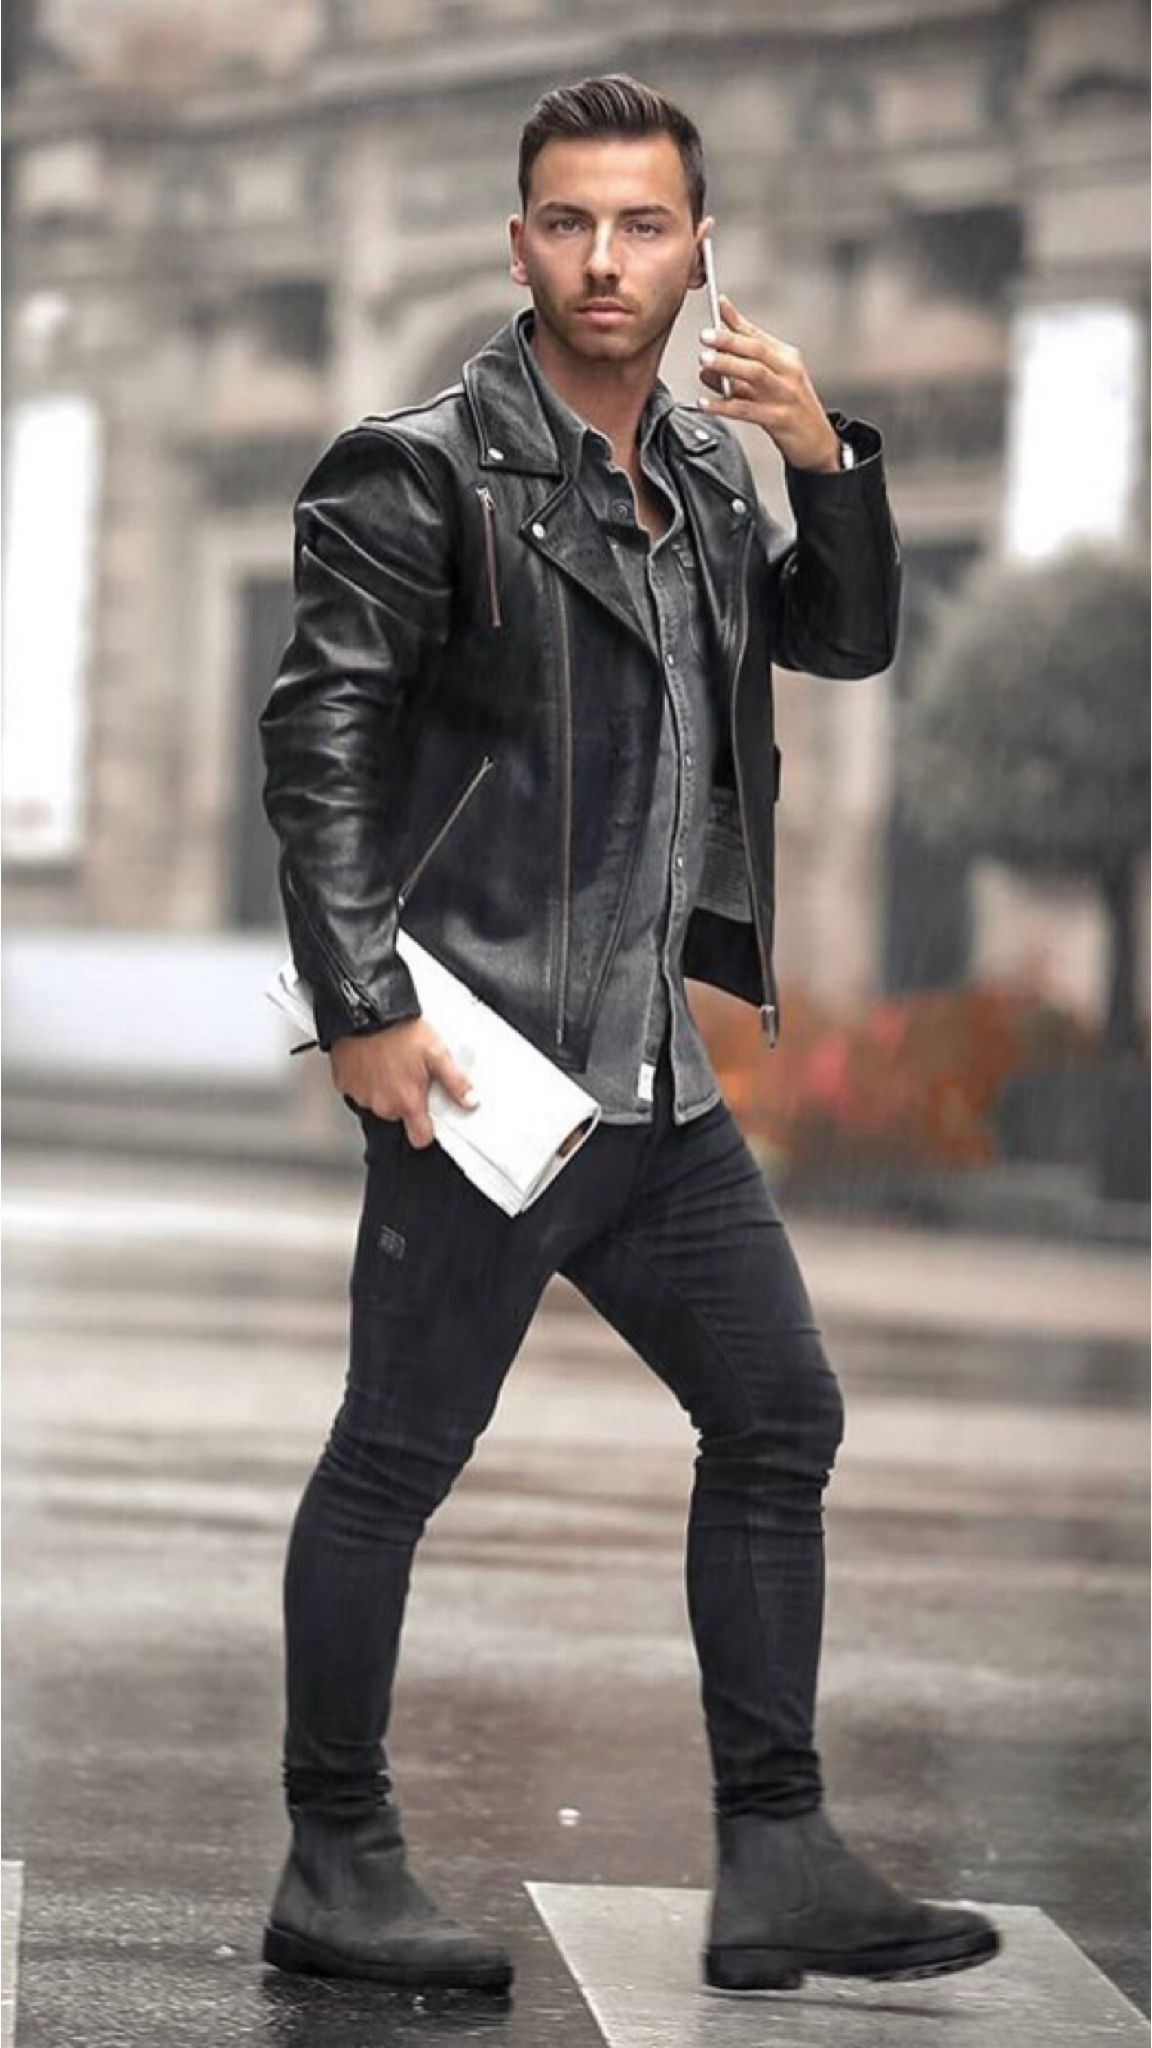 18 Casual Outfits You Should Copy Leather Jacket Men Leather Jacket Outfit Men Leather Jacket [ 2048 x 1152 Pixel ]